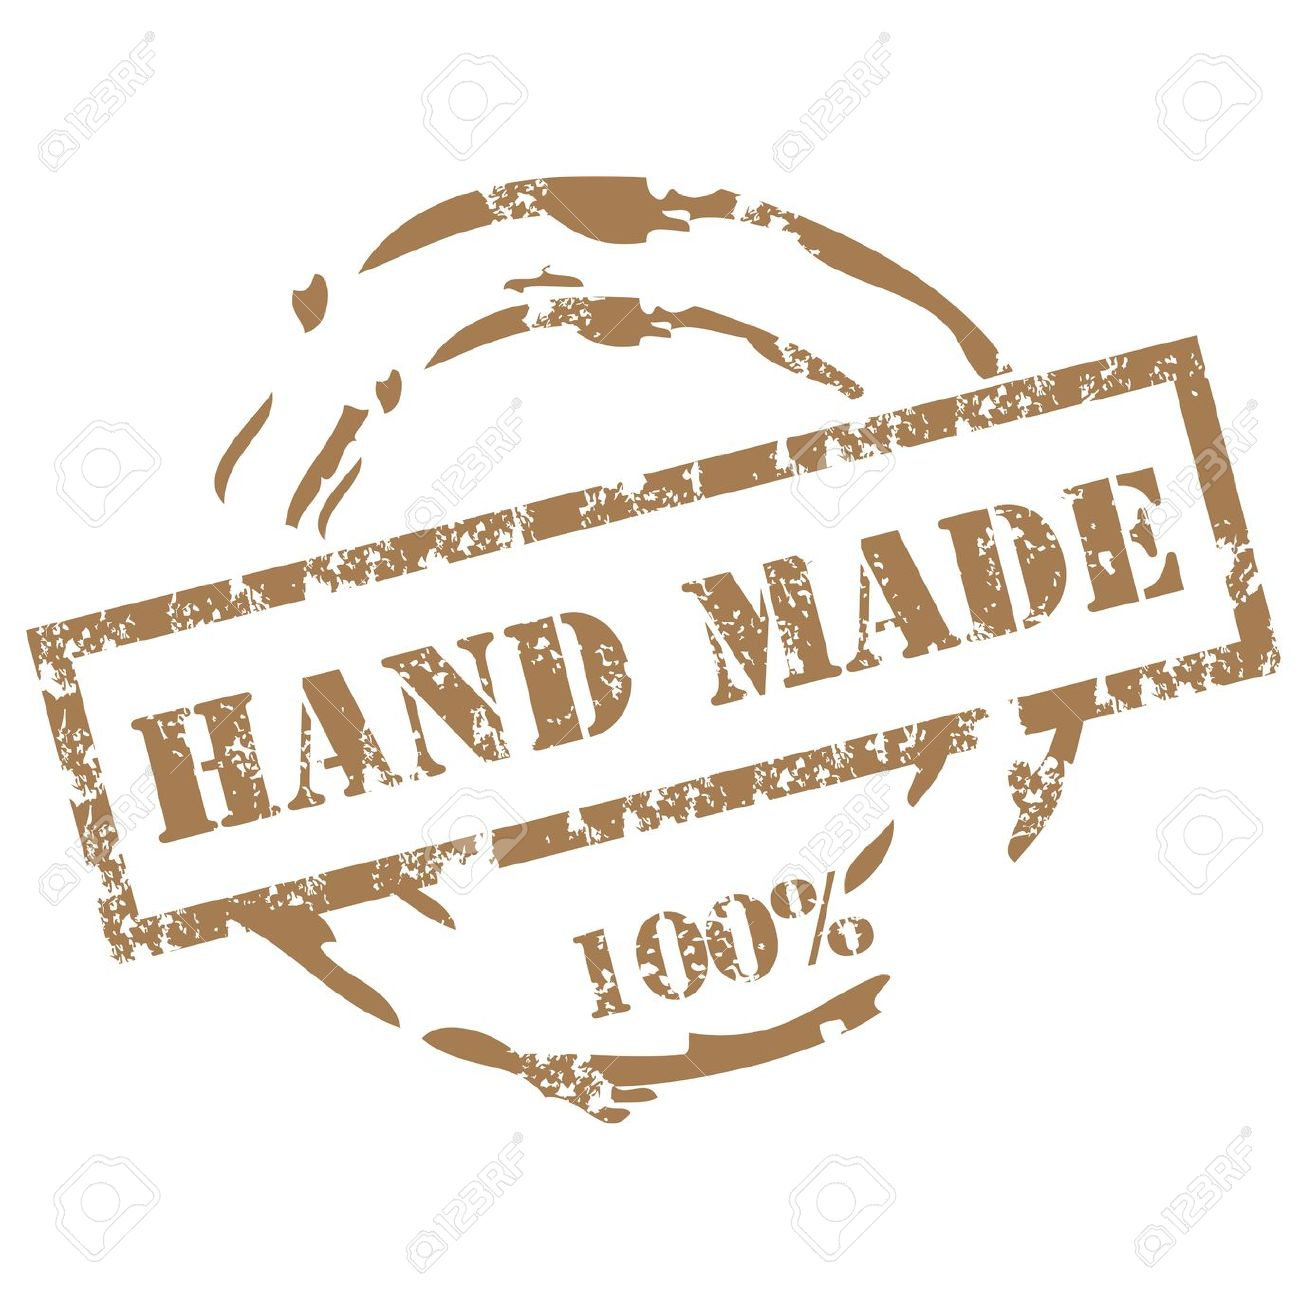 Handcrafted clipart - Clipground